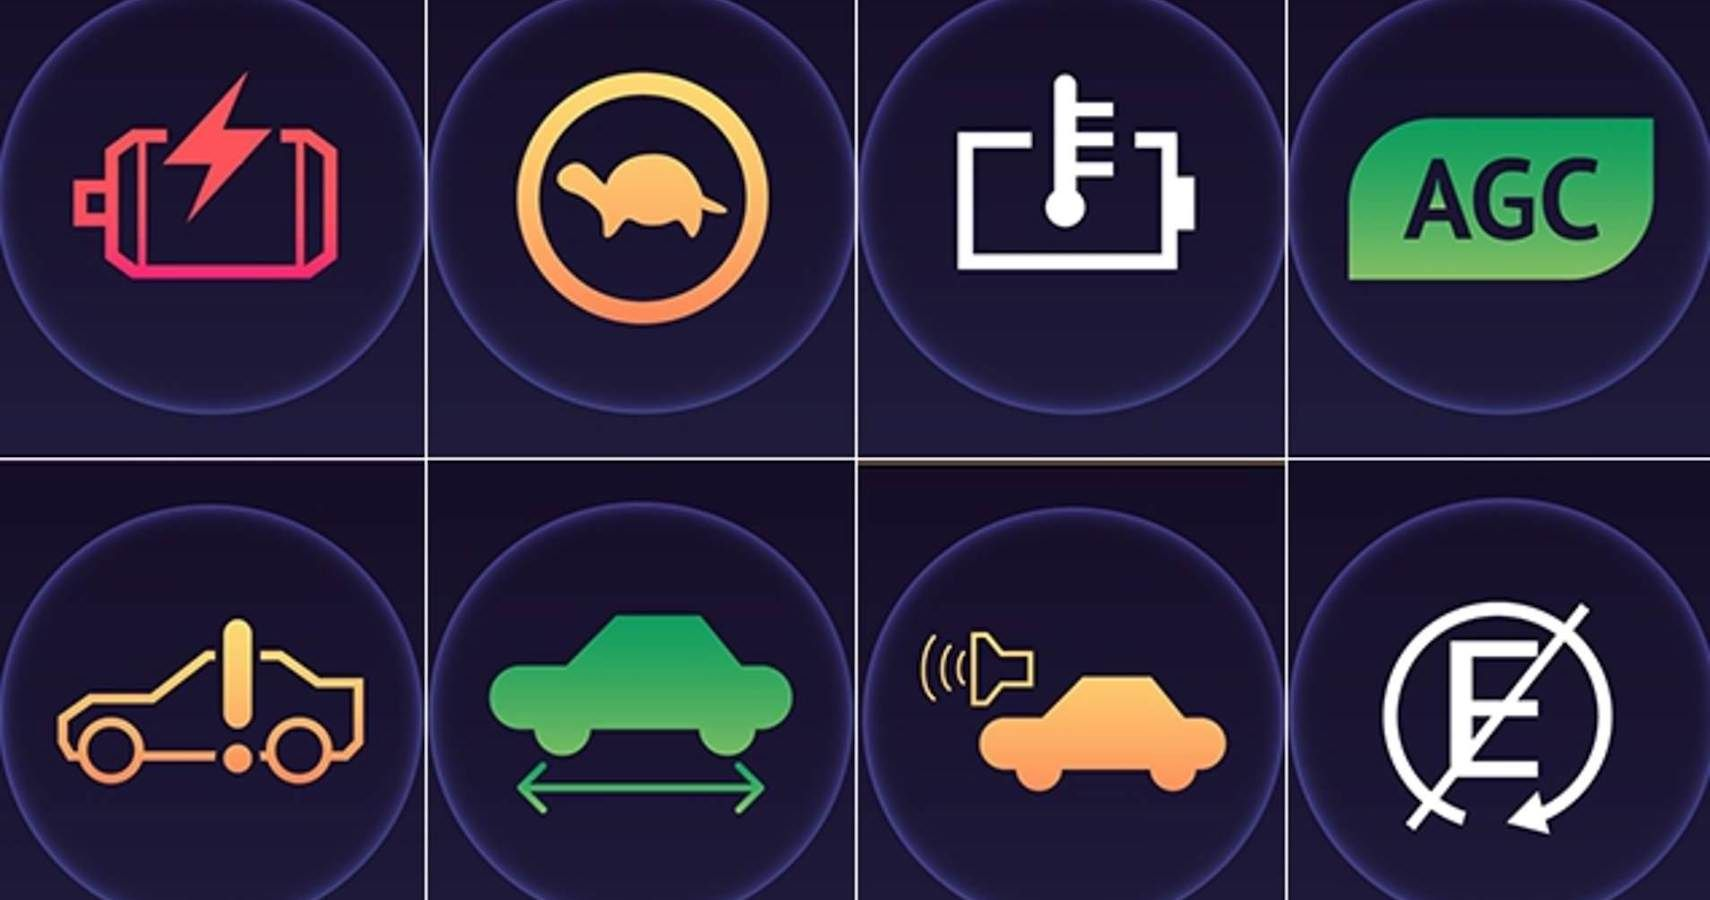 Electric And Hybrid Dashboard Symbols: How Many Can You Identify?